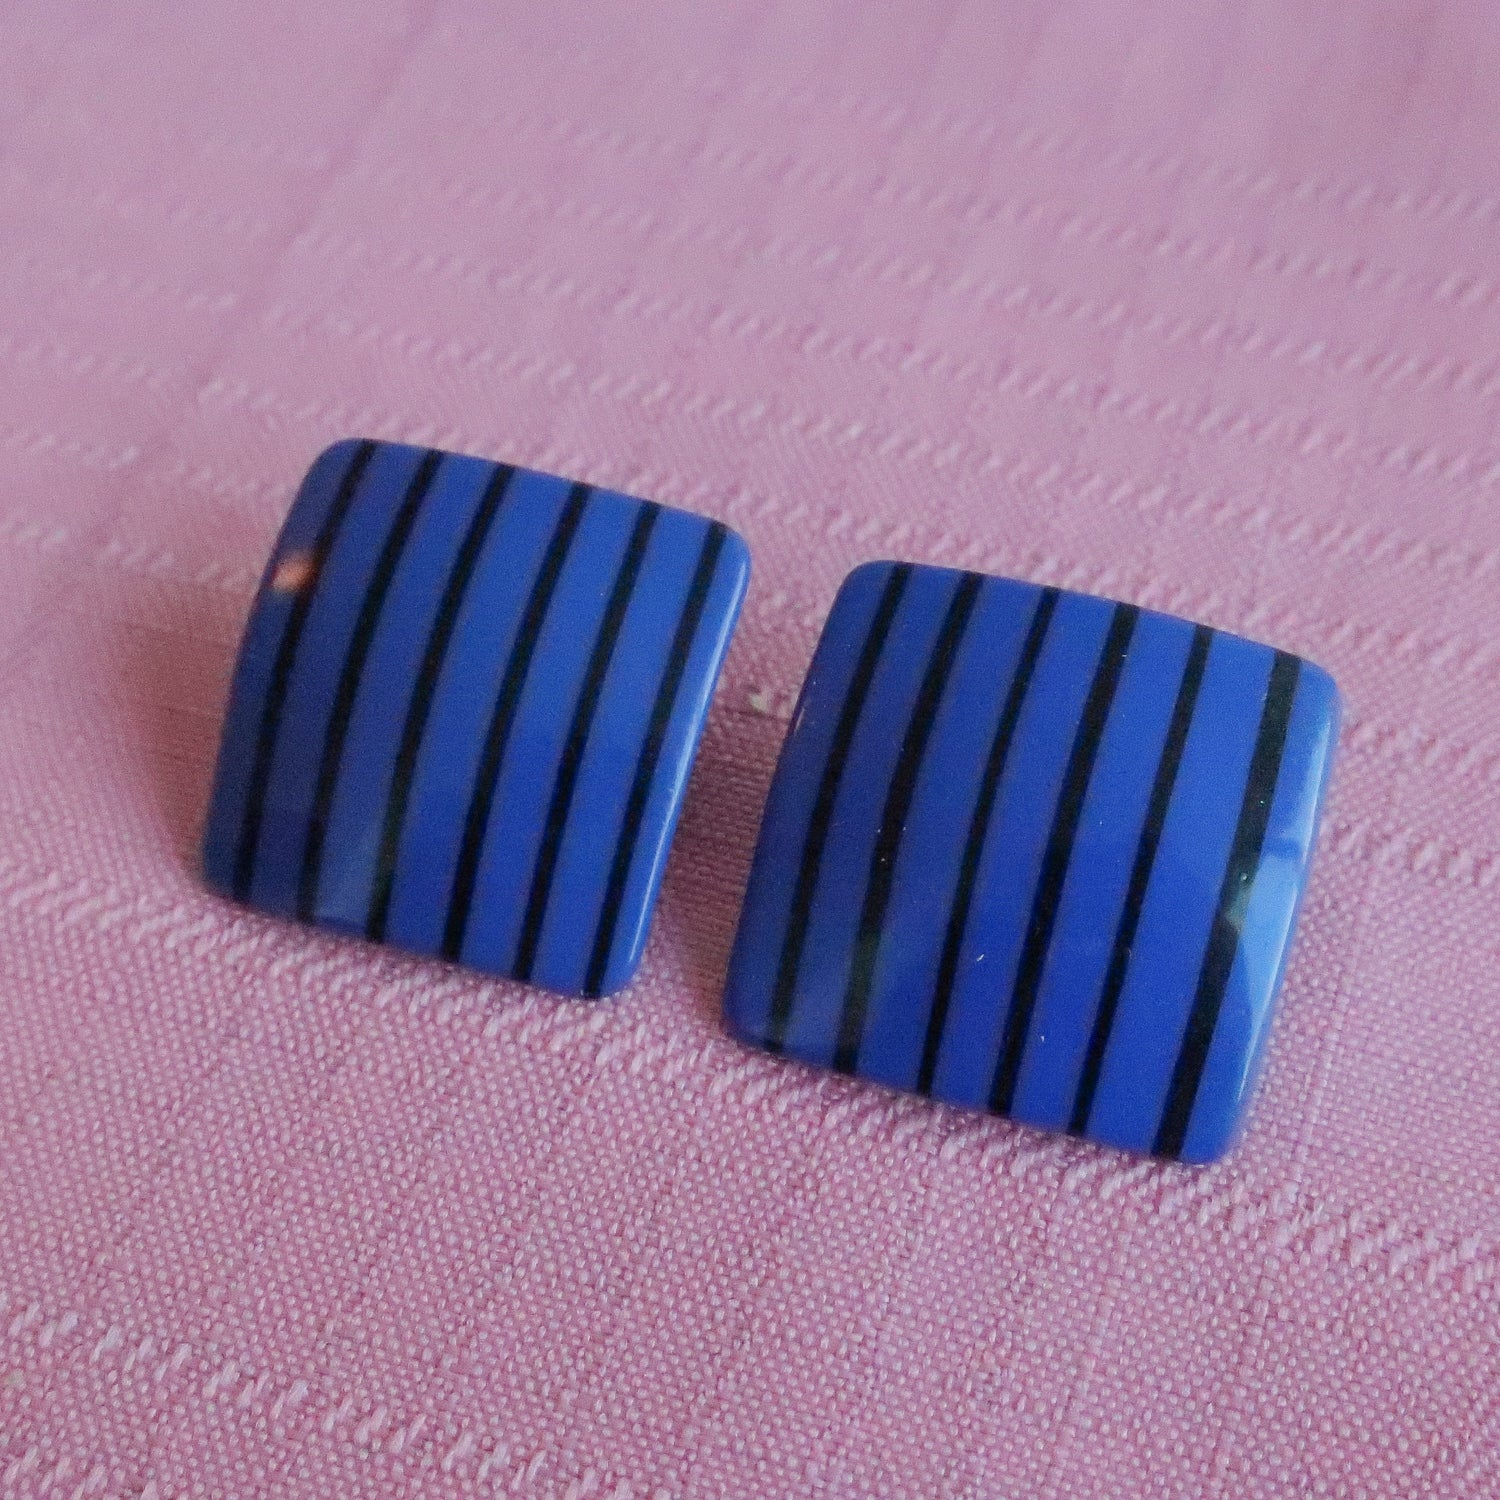 Second Room Vintage Clothing. Vintage black and blue striped square stud earrings. Free North American shipping on all orders.